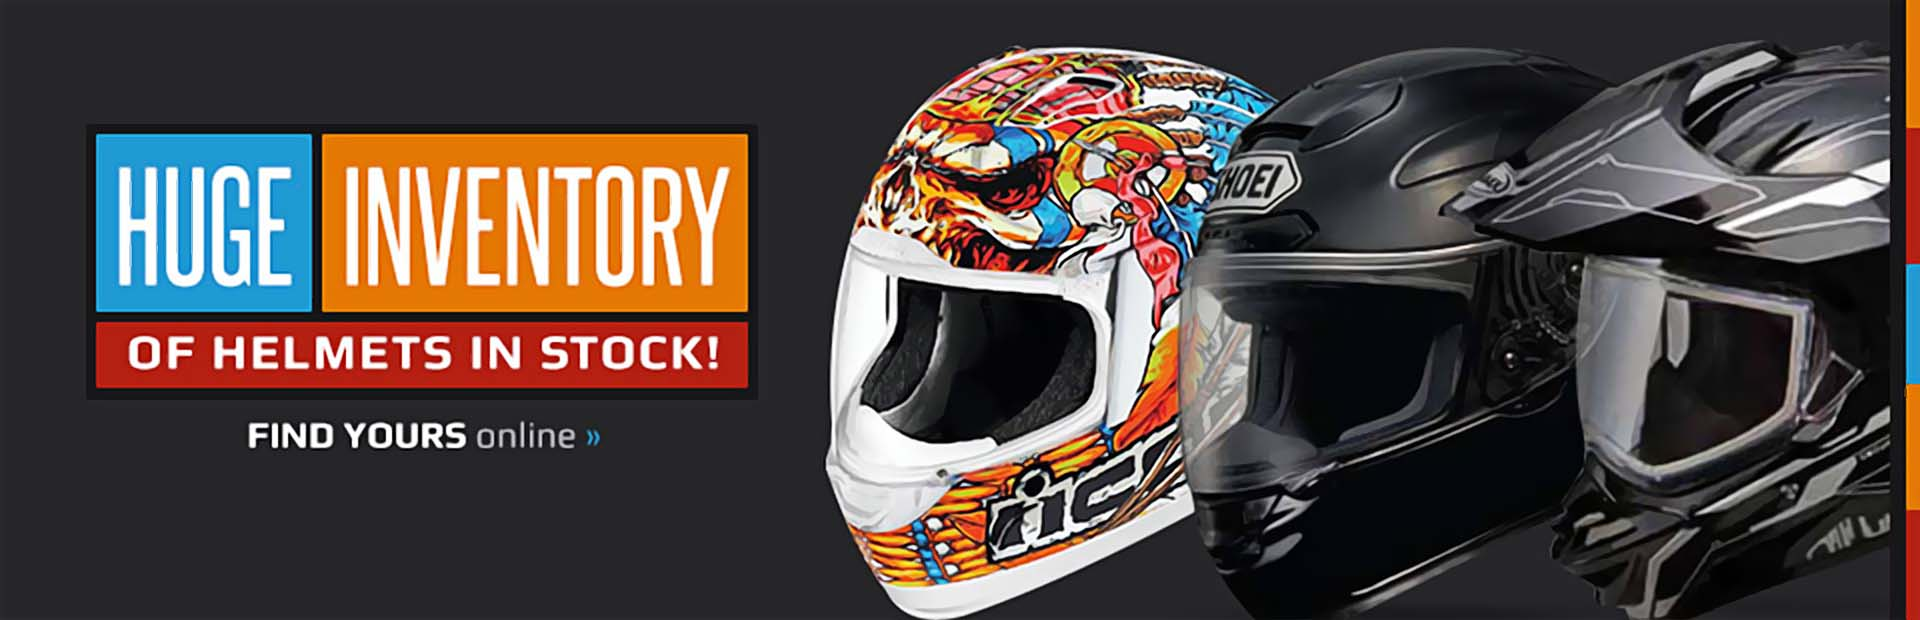 We have a huge inventory of helmets in stock!